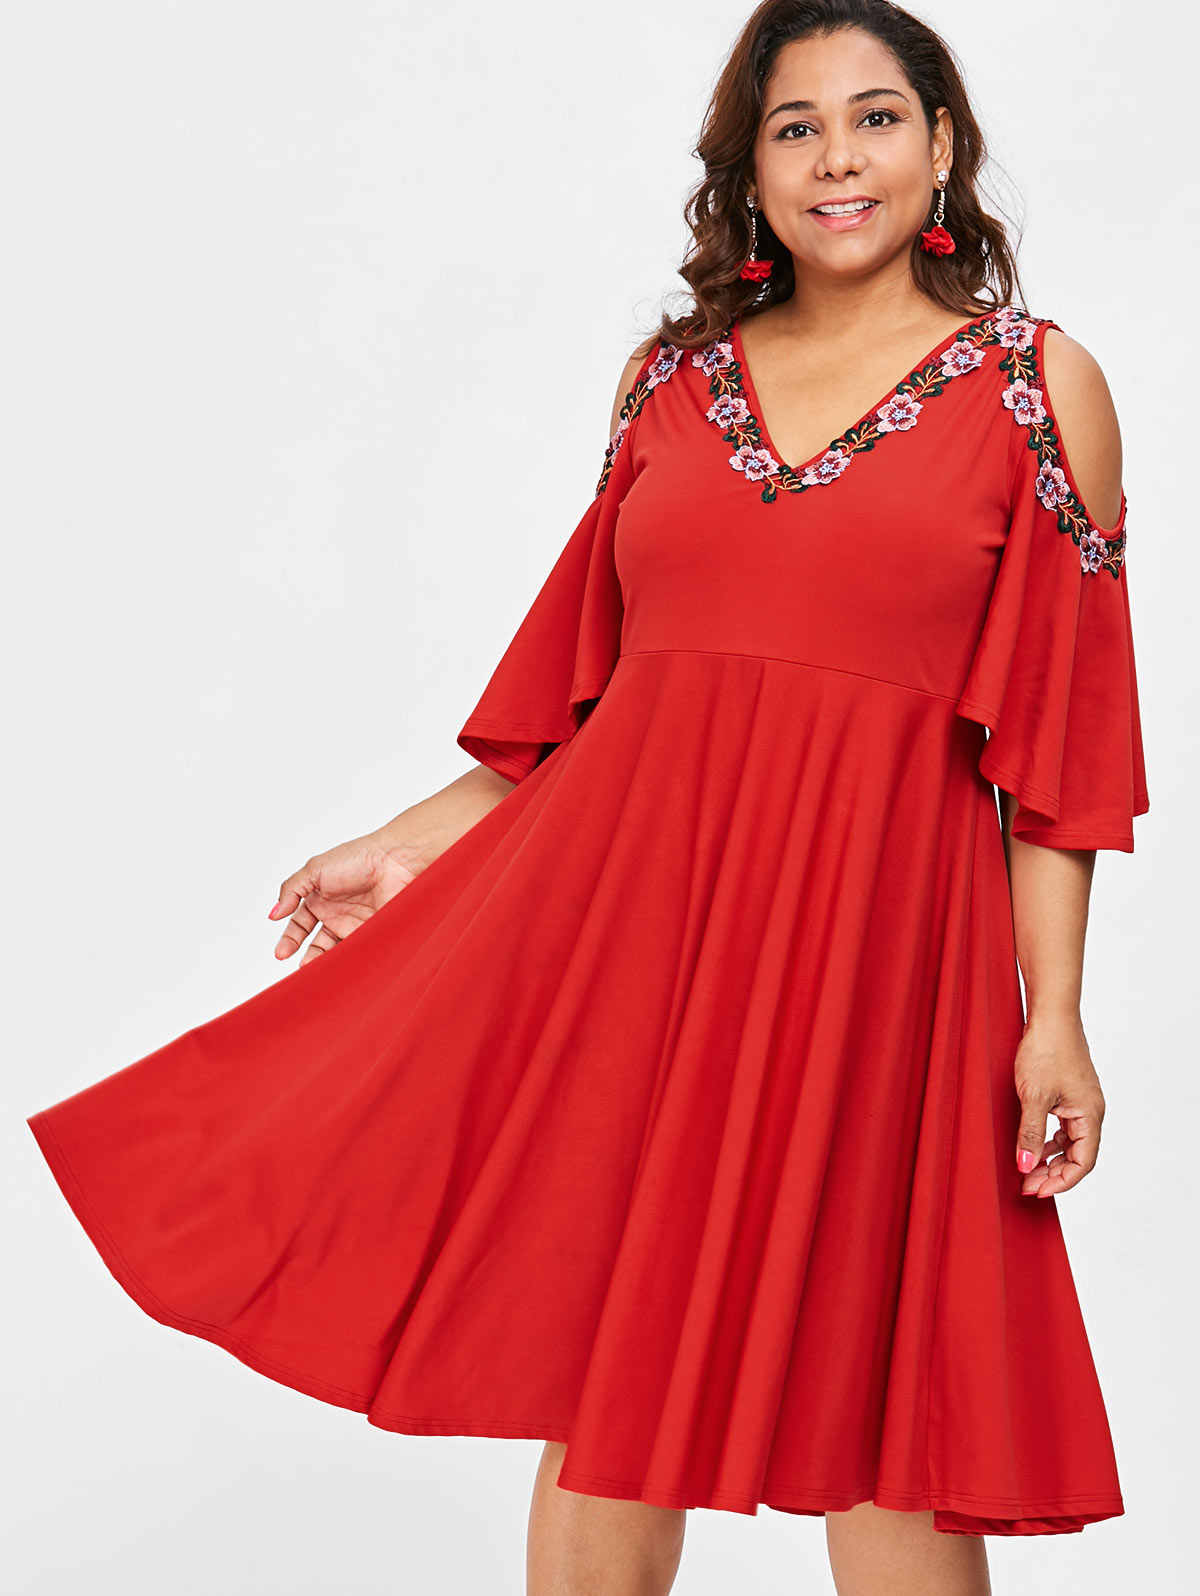 75849c0447931 Detail Feedback Questions about Wipalo Plus Size 5XL Floral ...